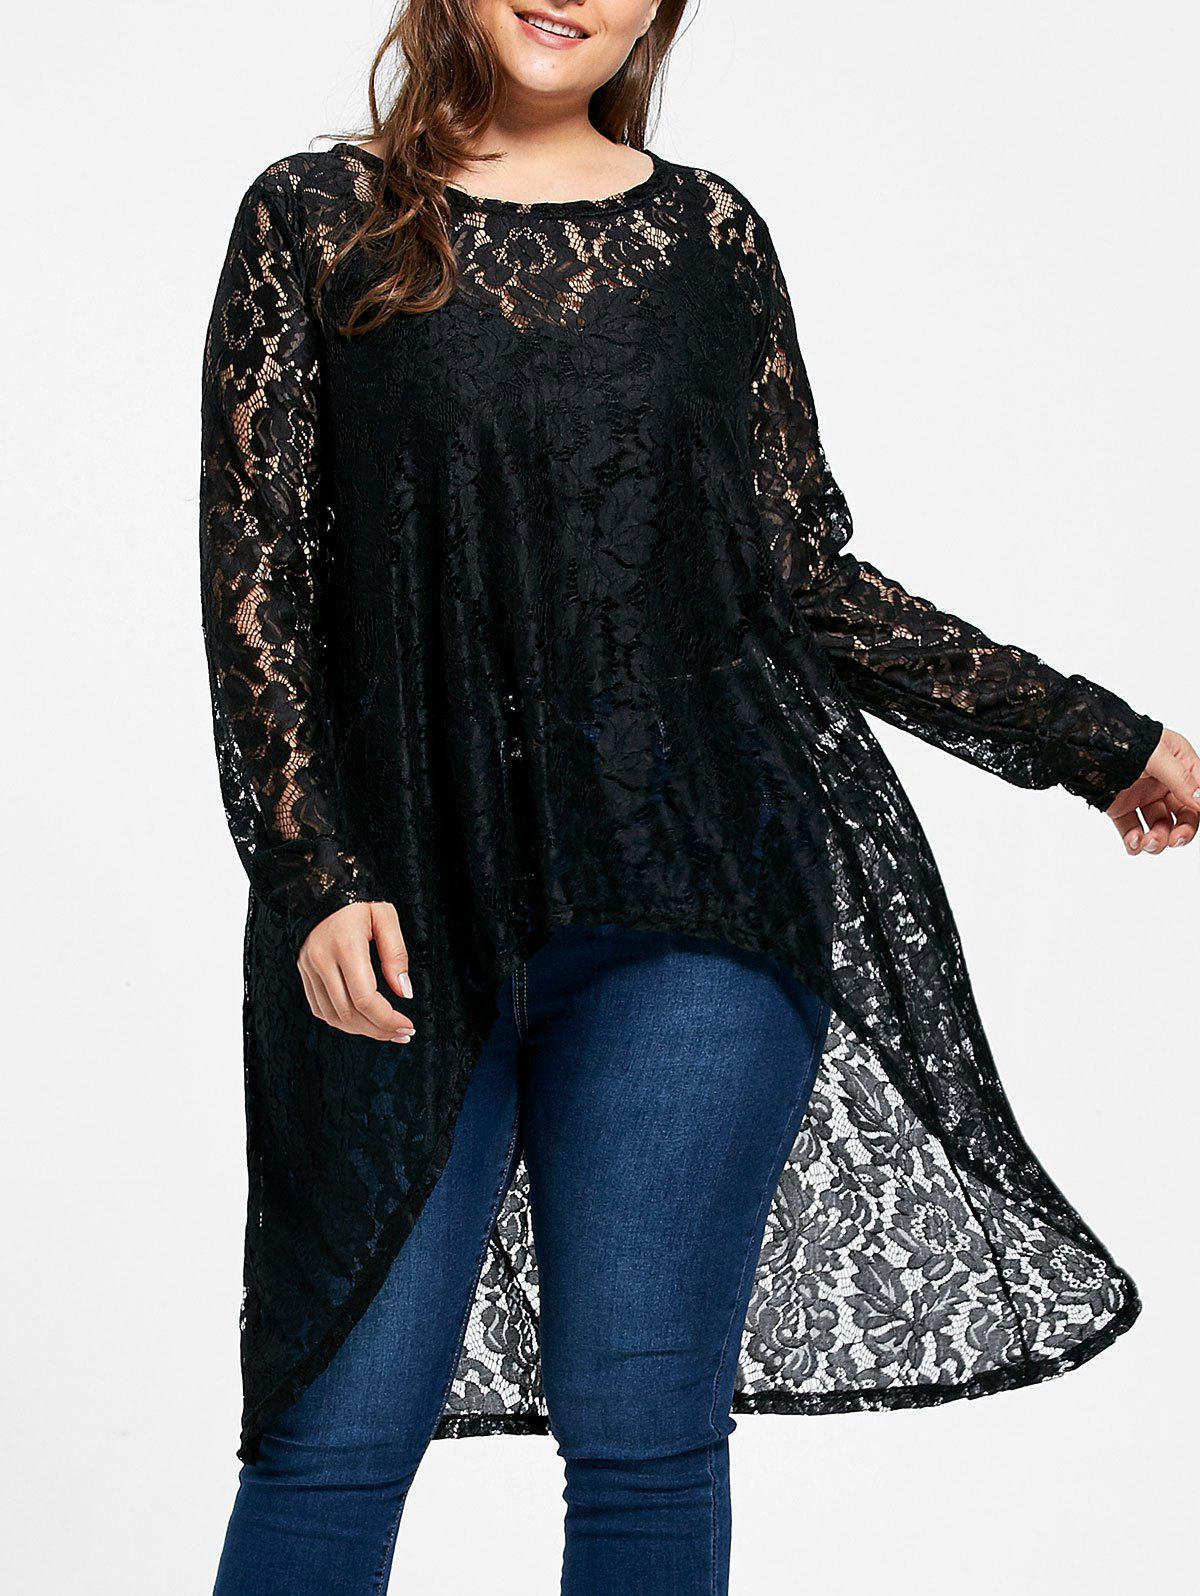 Plus  Size High Low Sheer Flower Lace BlouseWOMEN<br><br>Size: 5XL; Color: BLACK; Material: Lace,Polyester; Shirt Length: Long; Sleeve Length: Full; Collar: Round Neck; Style: Fashion; Season: Fall,Spring; Embellishment: Dovetail,Hollow Out,Lace; Pattern Type: Solid; Weight: 0.2500kg; Package Contents: 1 x Blouse;